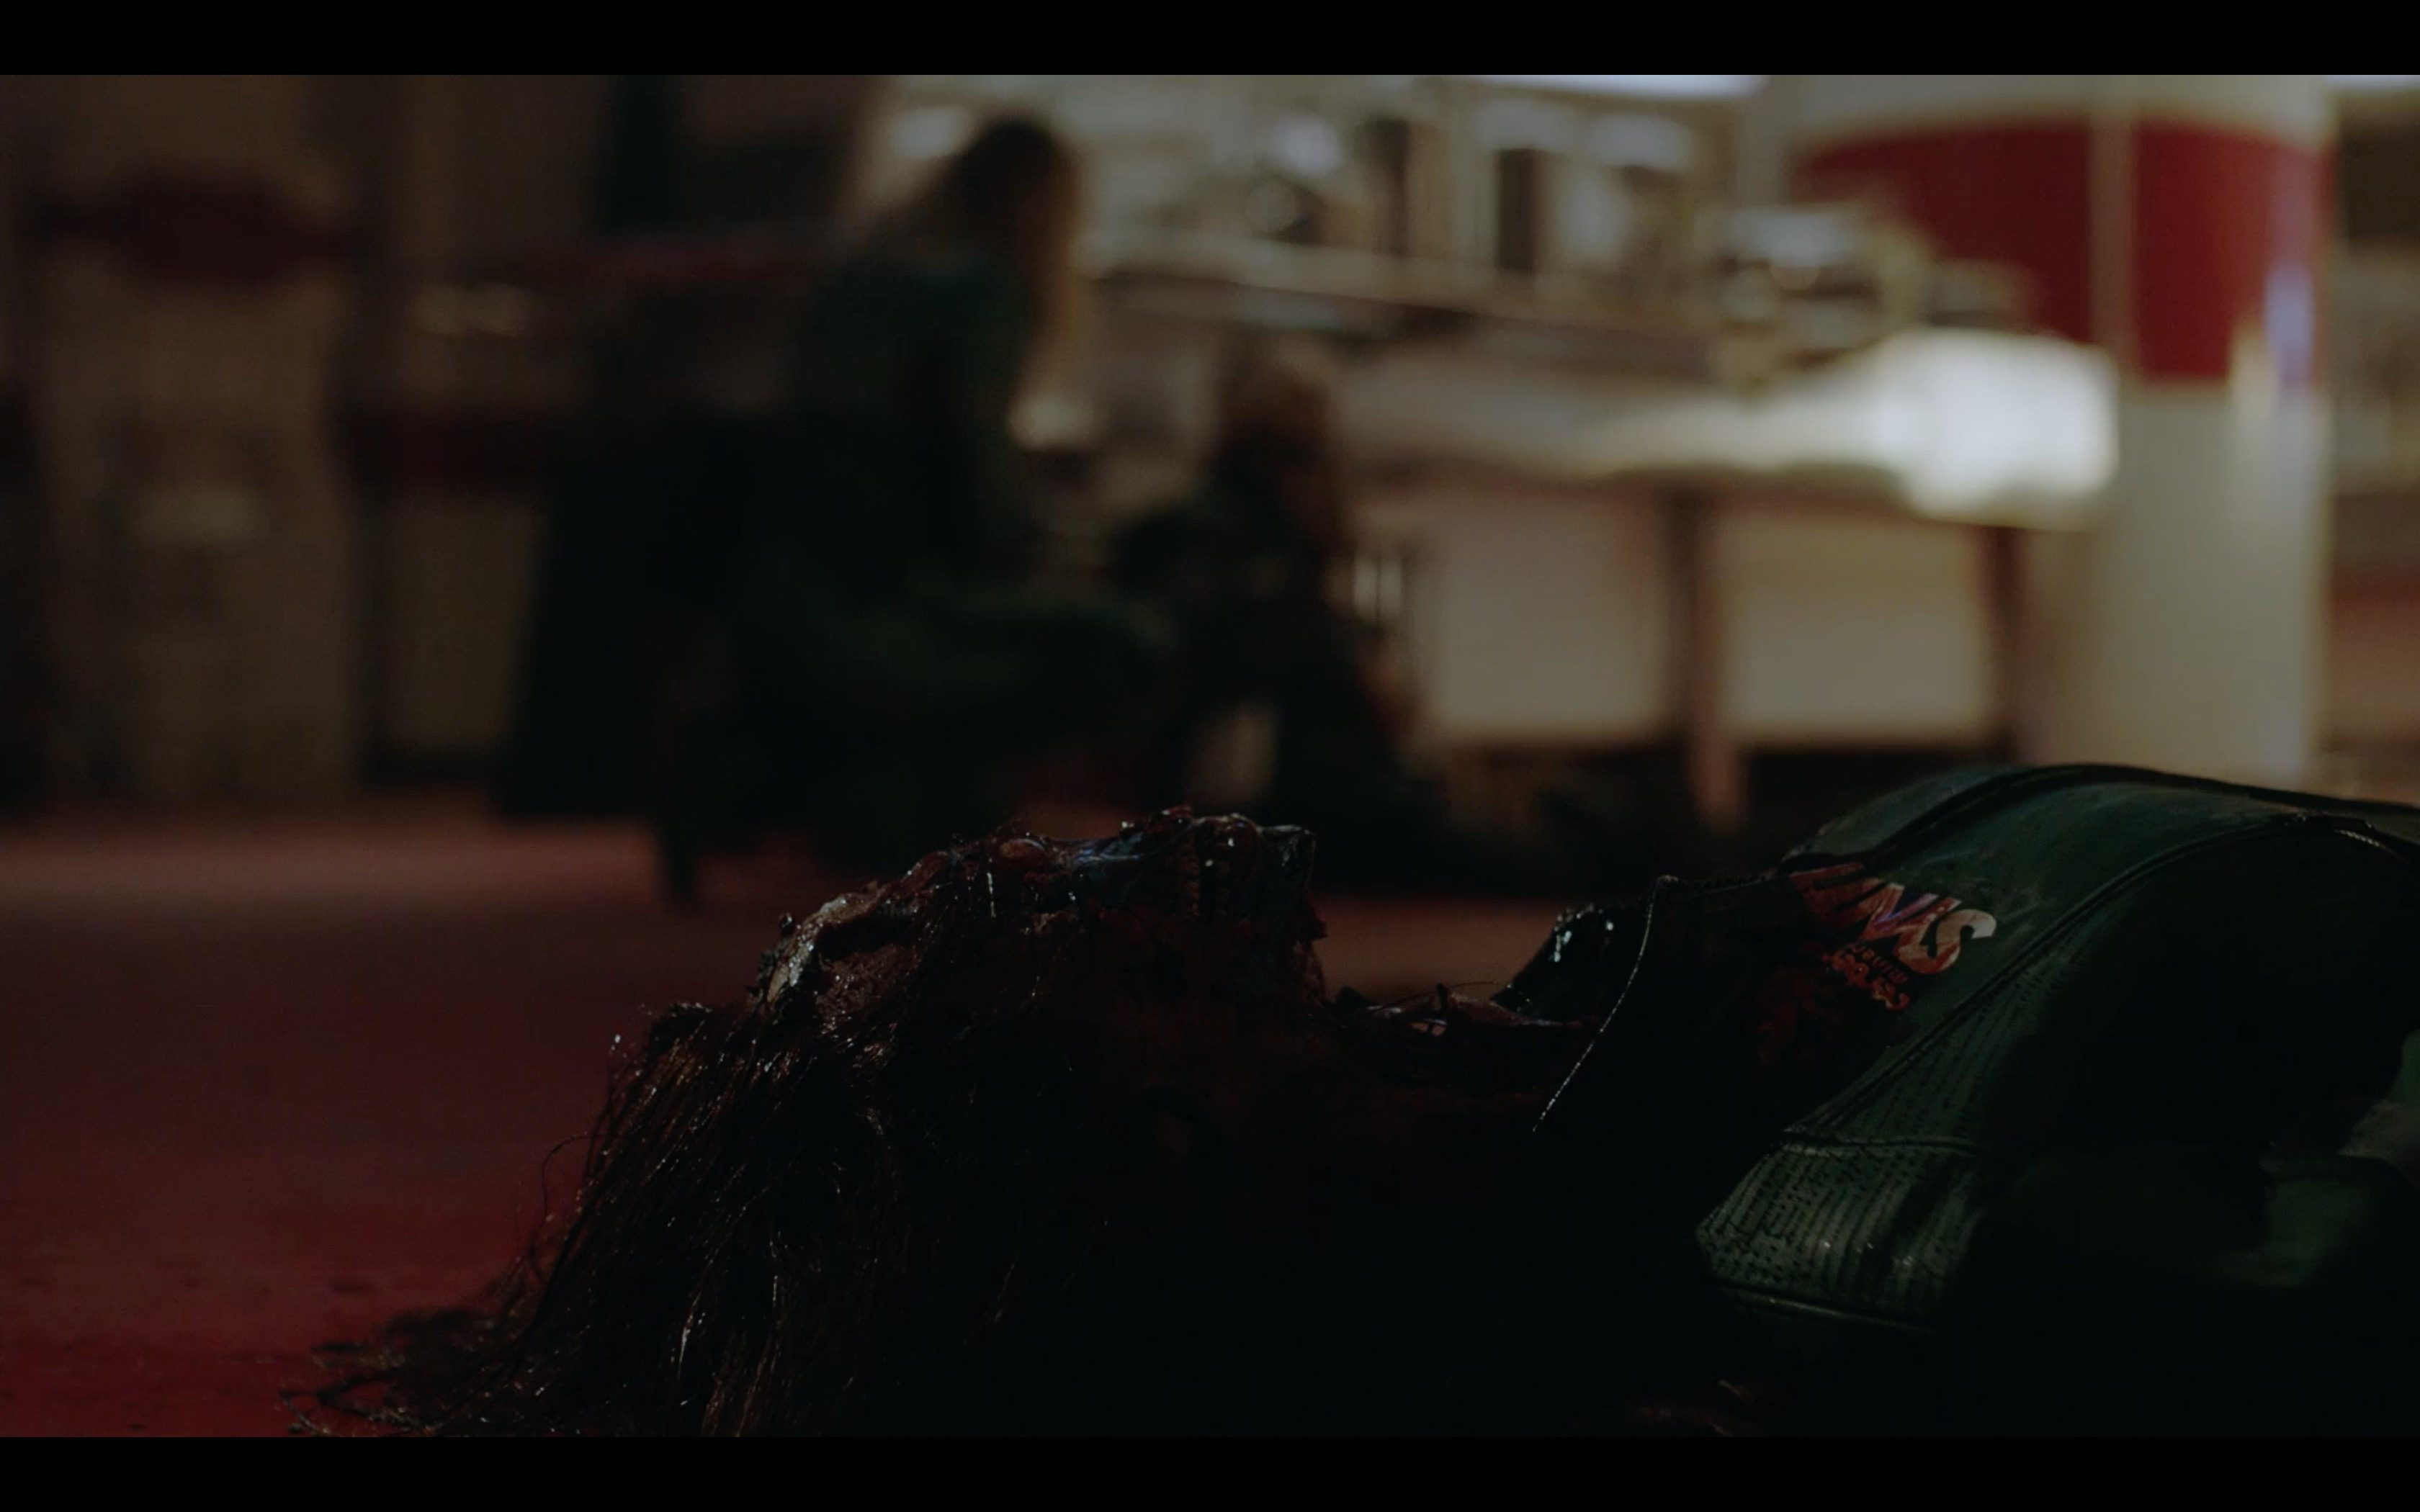 Neill Blomkamp's New Short Movie: Zygote